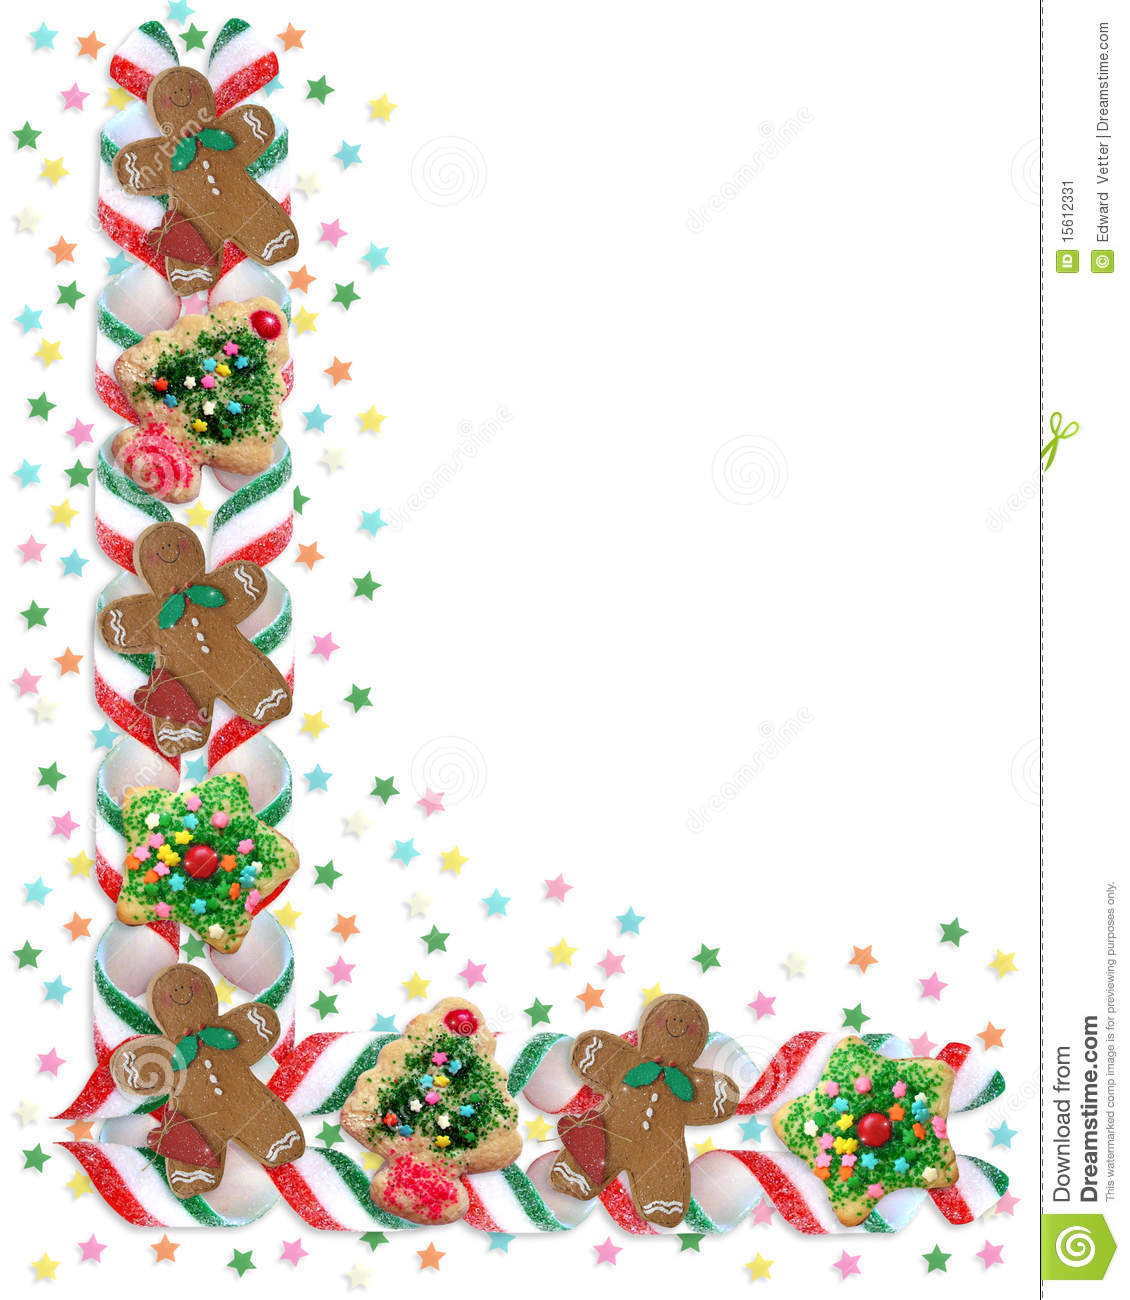 christmas border cookies and candy stock illustration illustration rh dreamstime com Holiday Divider Holiday Ornament Clip Art